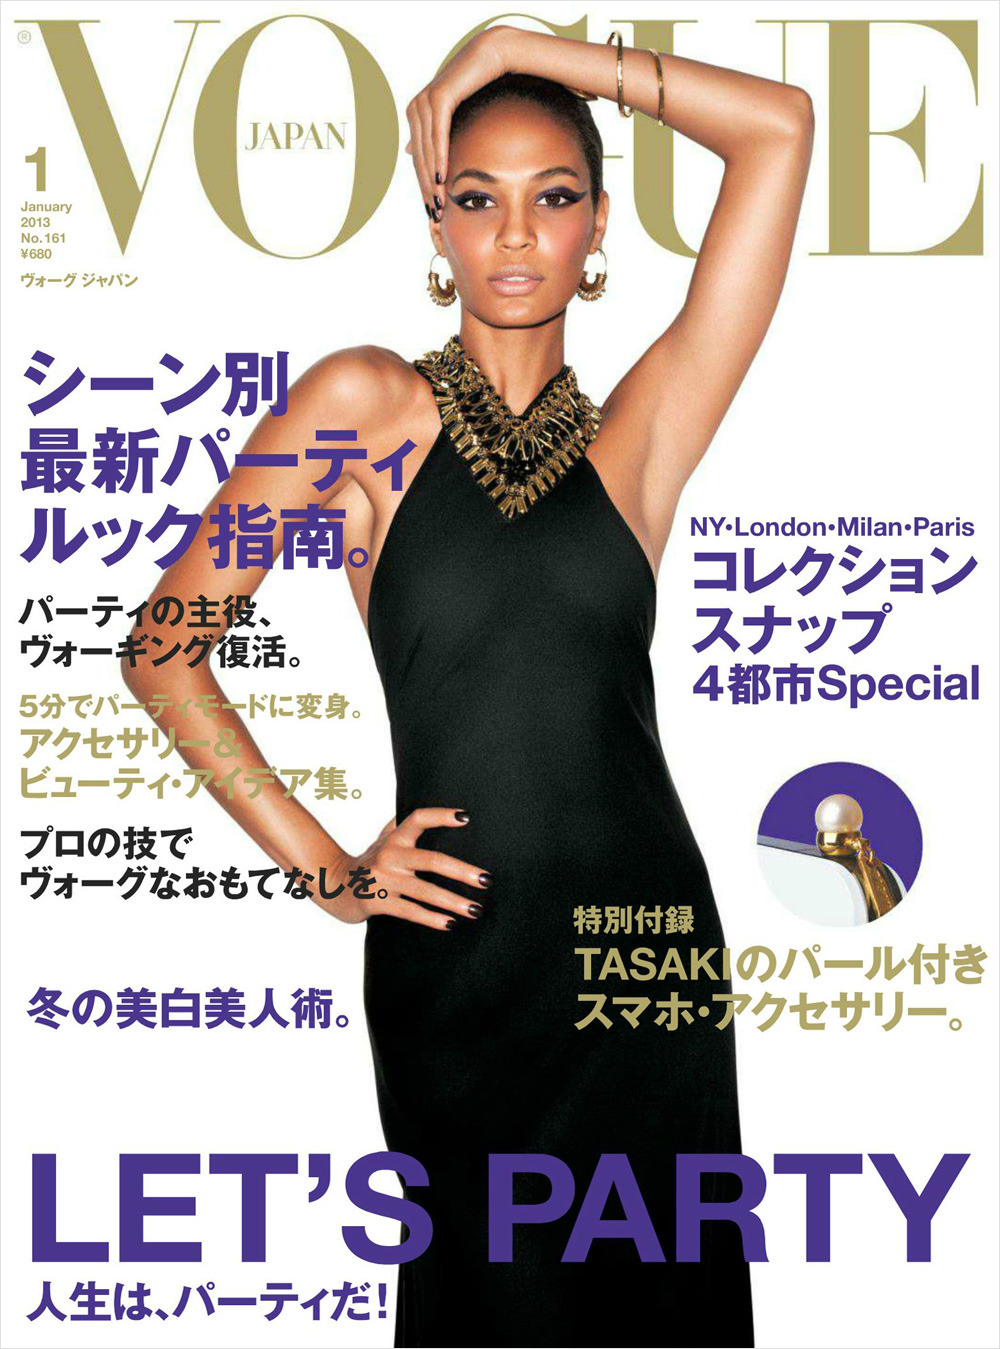 Joan Smalls for Vogue Japan January 2013.